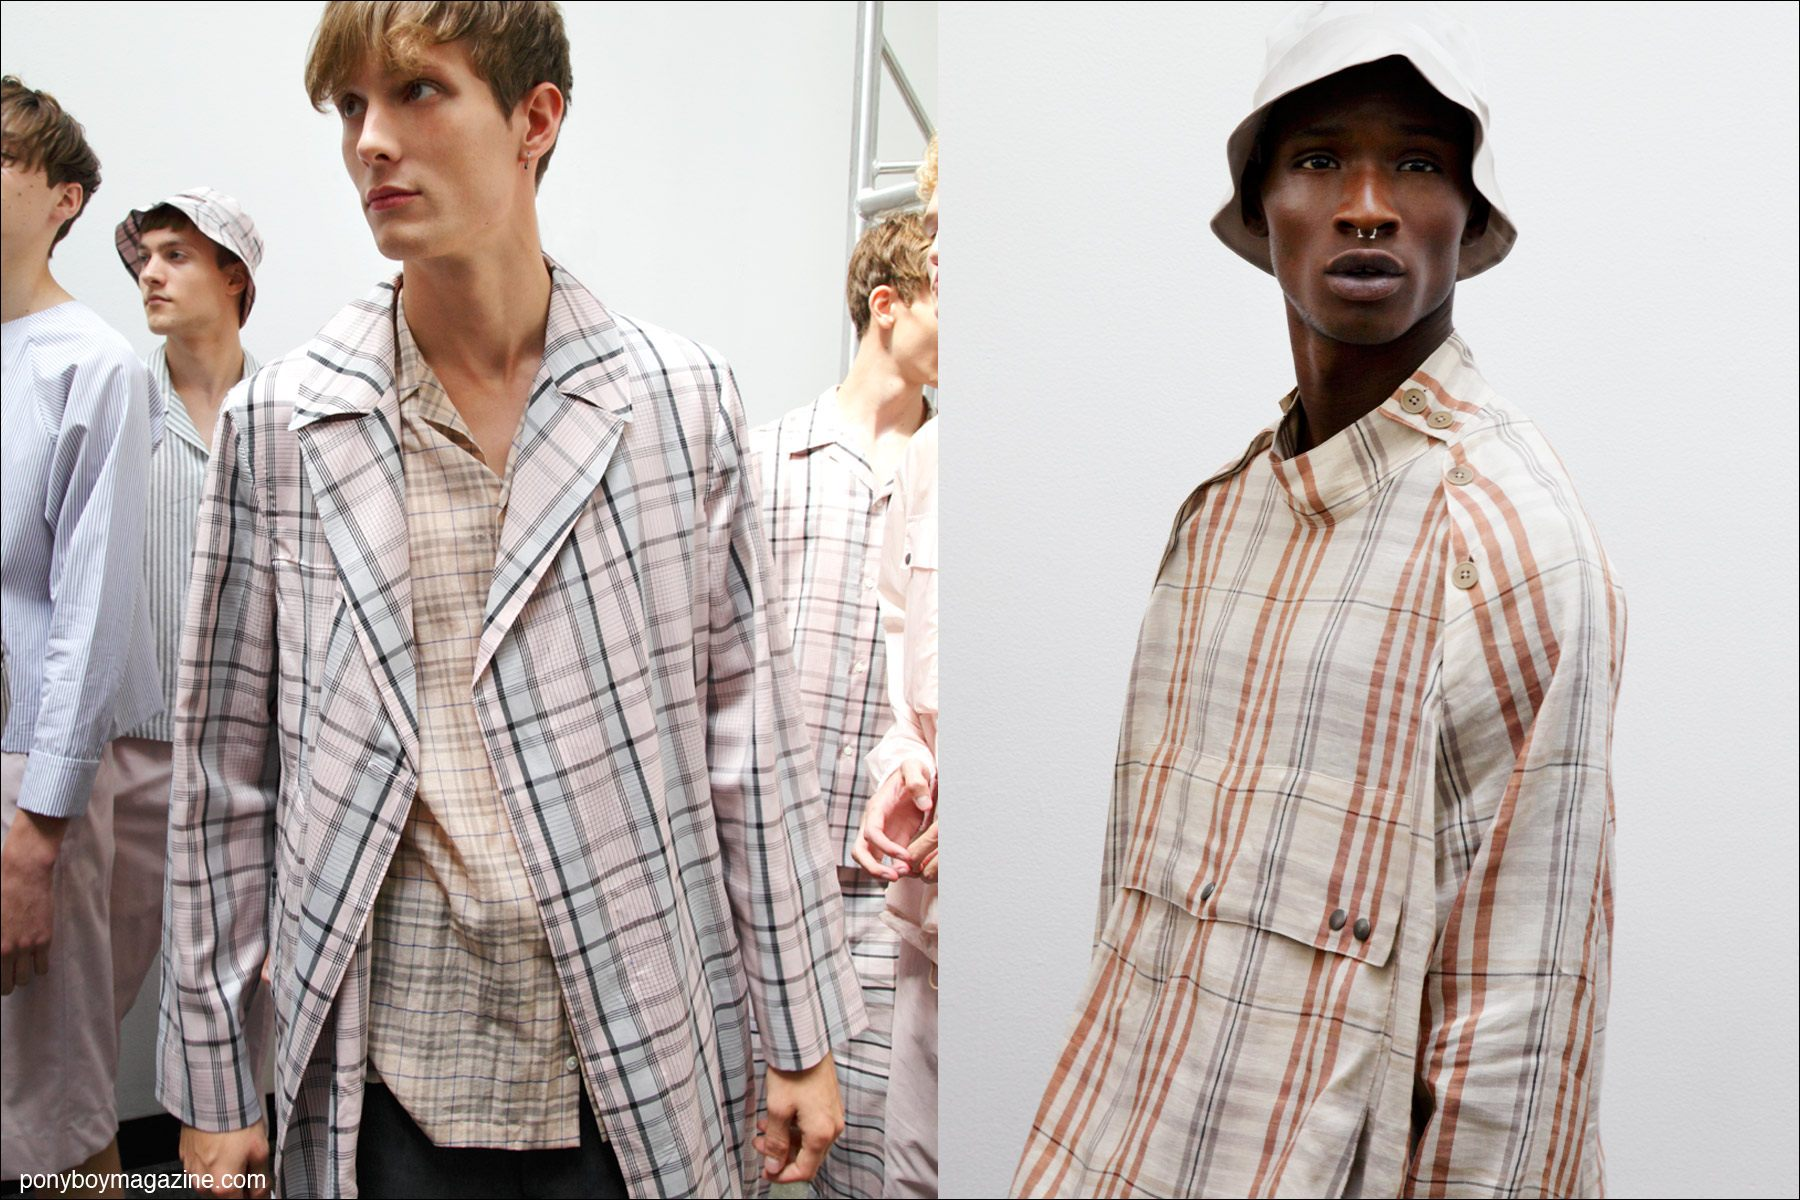 Models Felix Gesnouin and Adonis Bosso, photographed in plaid menswear, backstage at Duckie Brown S/S15. Photographed by Alexander Thompson for Ponyboy Magazine.